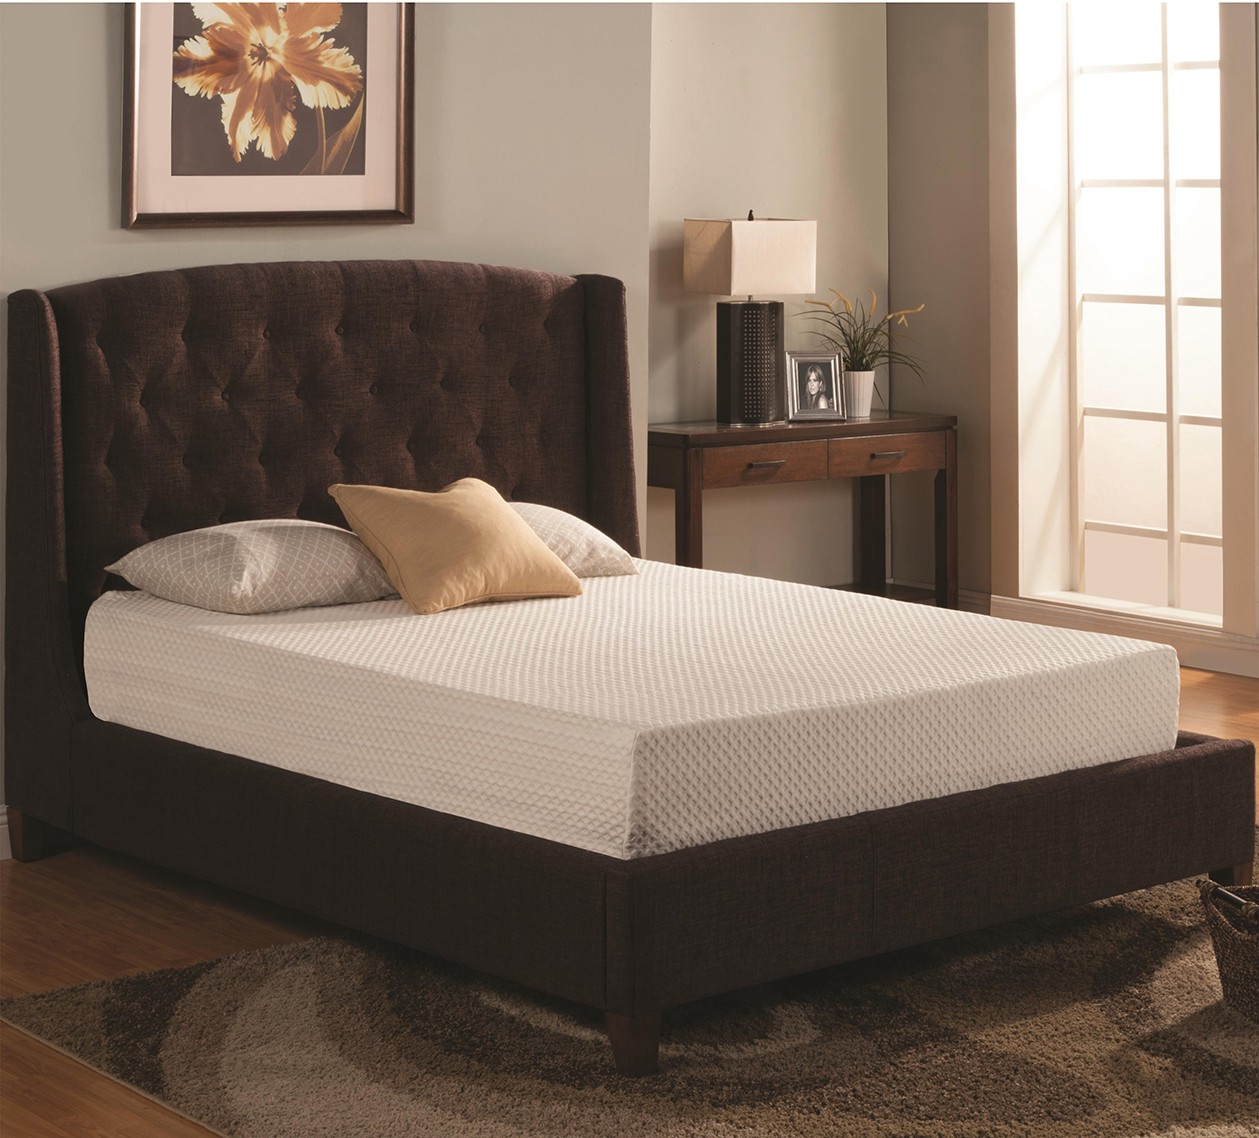 while choosing appropriate mattress you should take into the rigidity of it